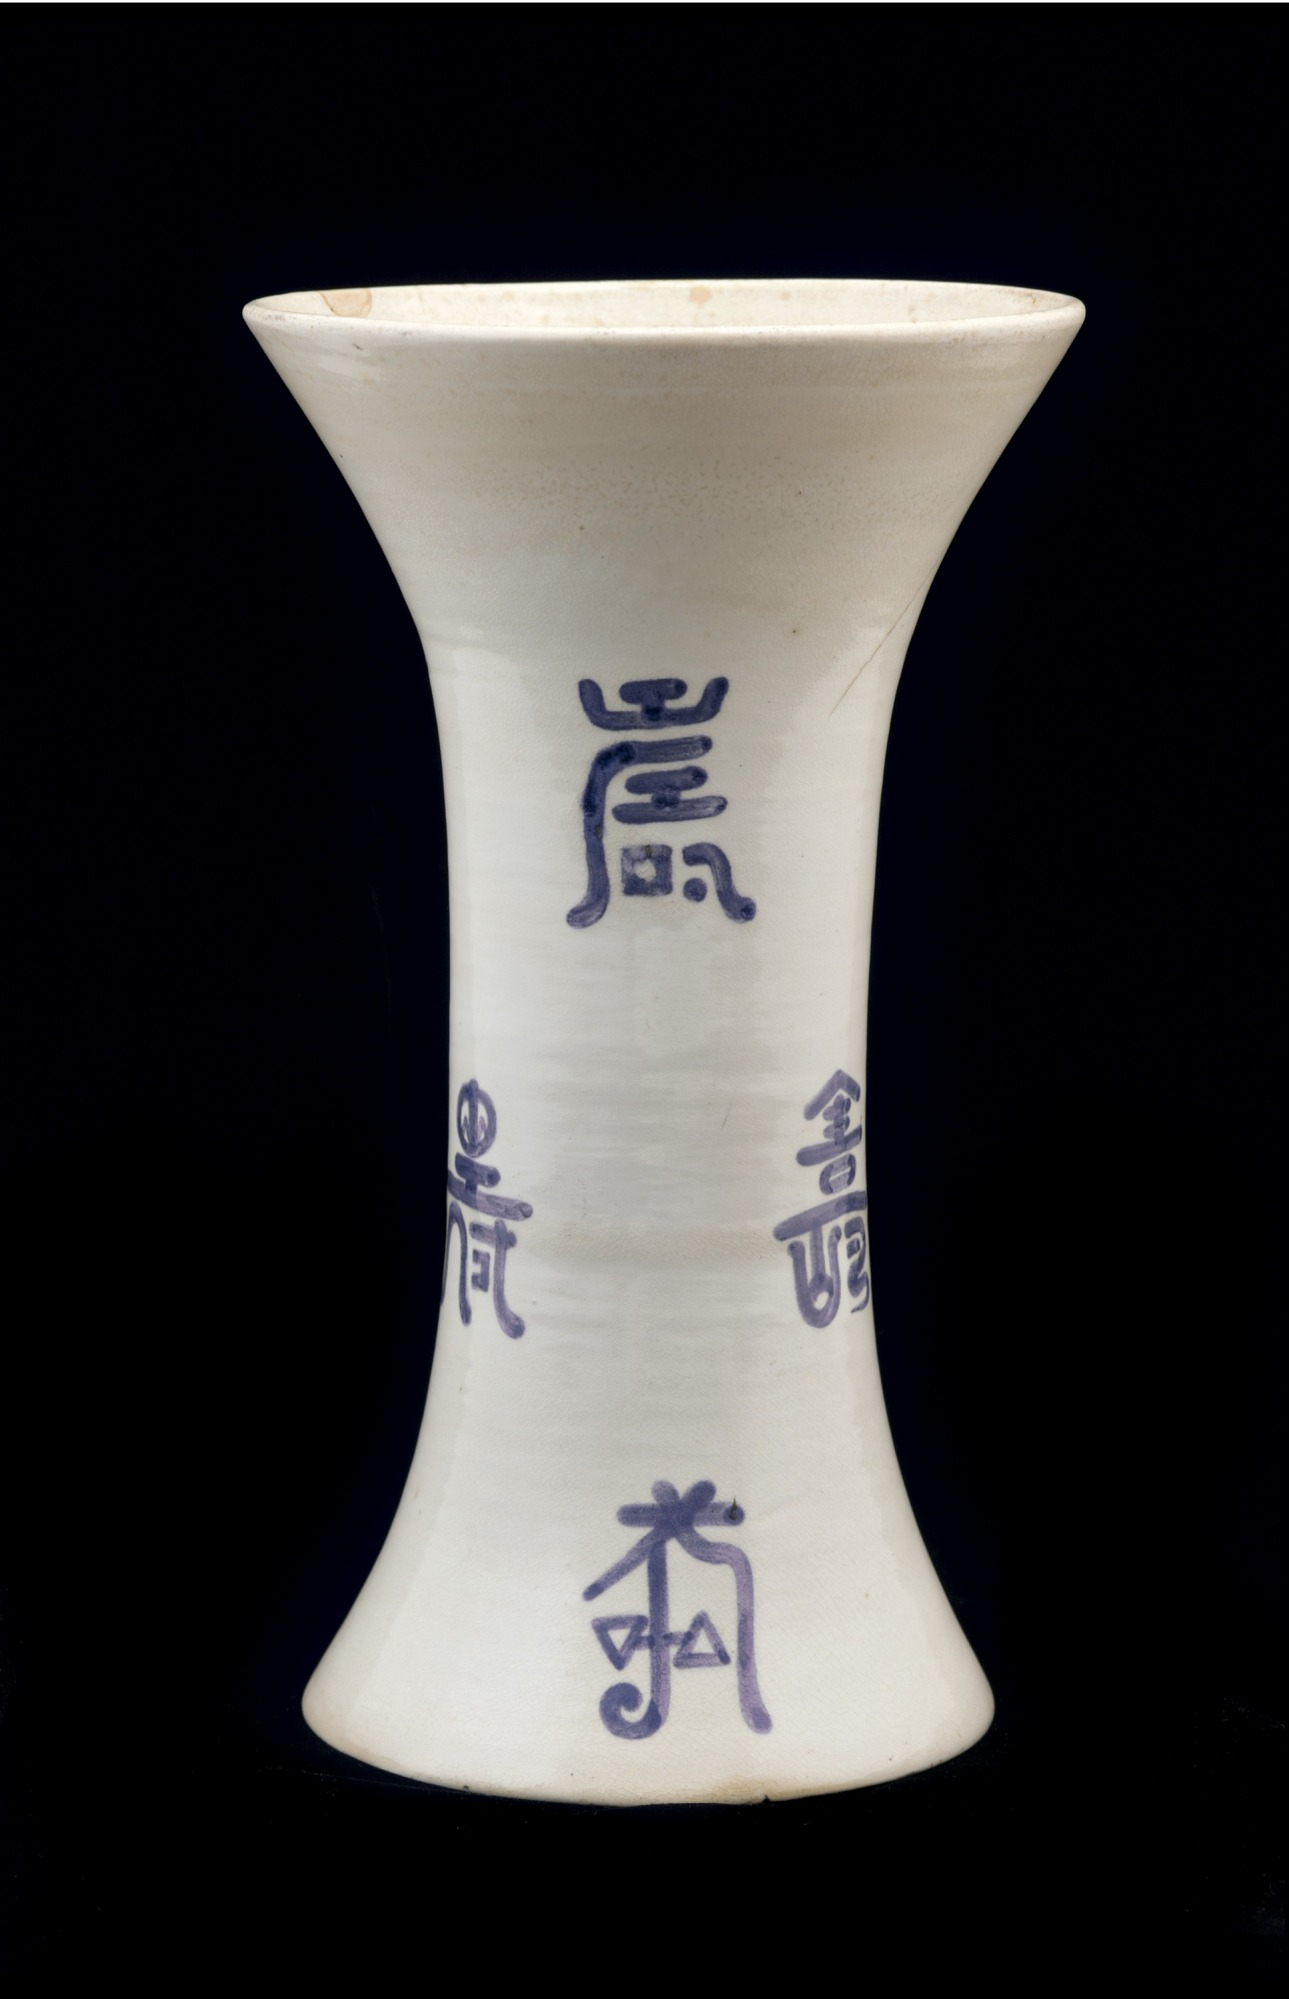 """Taizan ware vase with design of the character for """"longevity"""""""